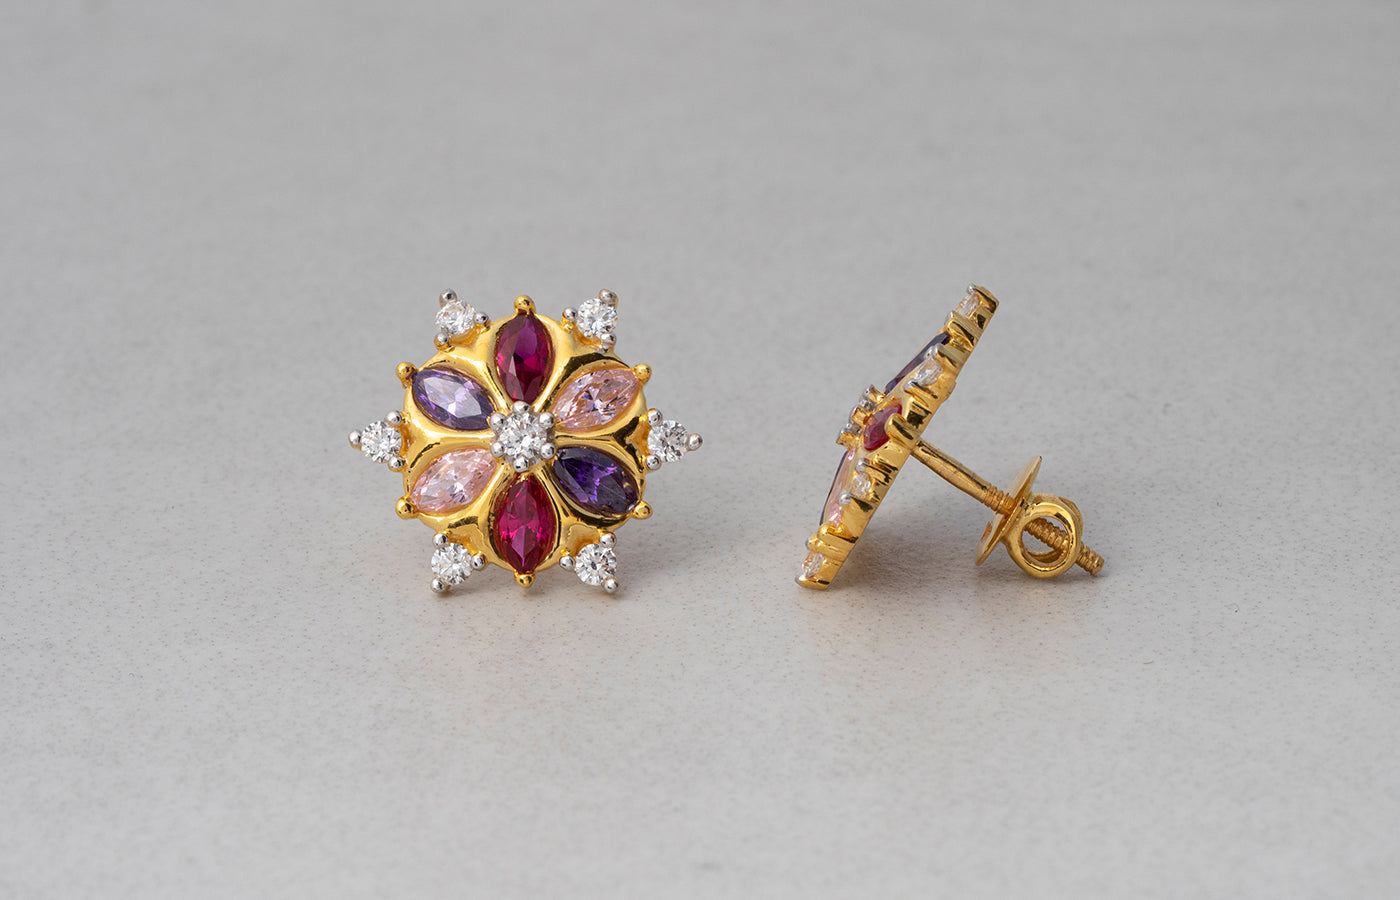 22ct Gold Stud Earrings set with Swarovski Zirconias and Multi-Coloured Stones (5.98g) ET7586